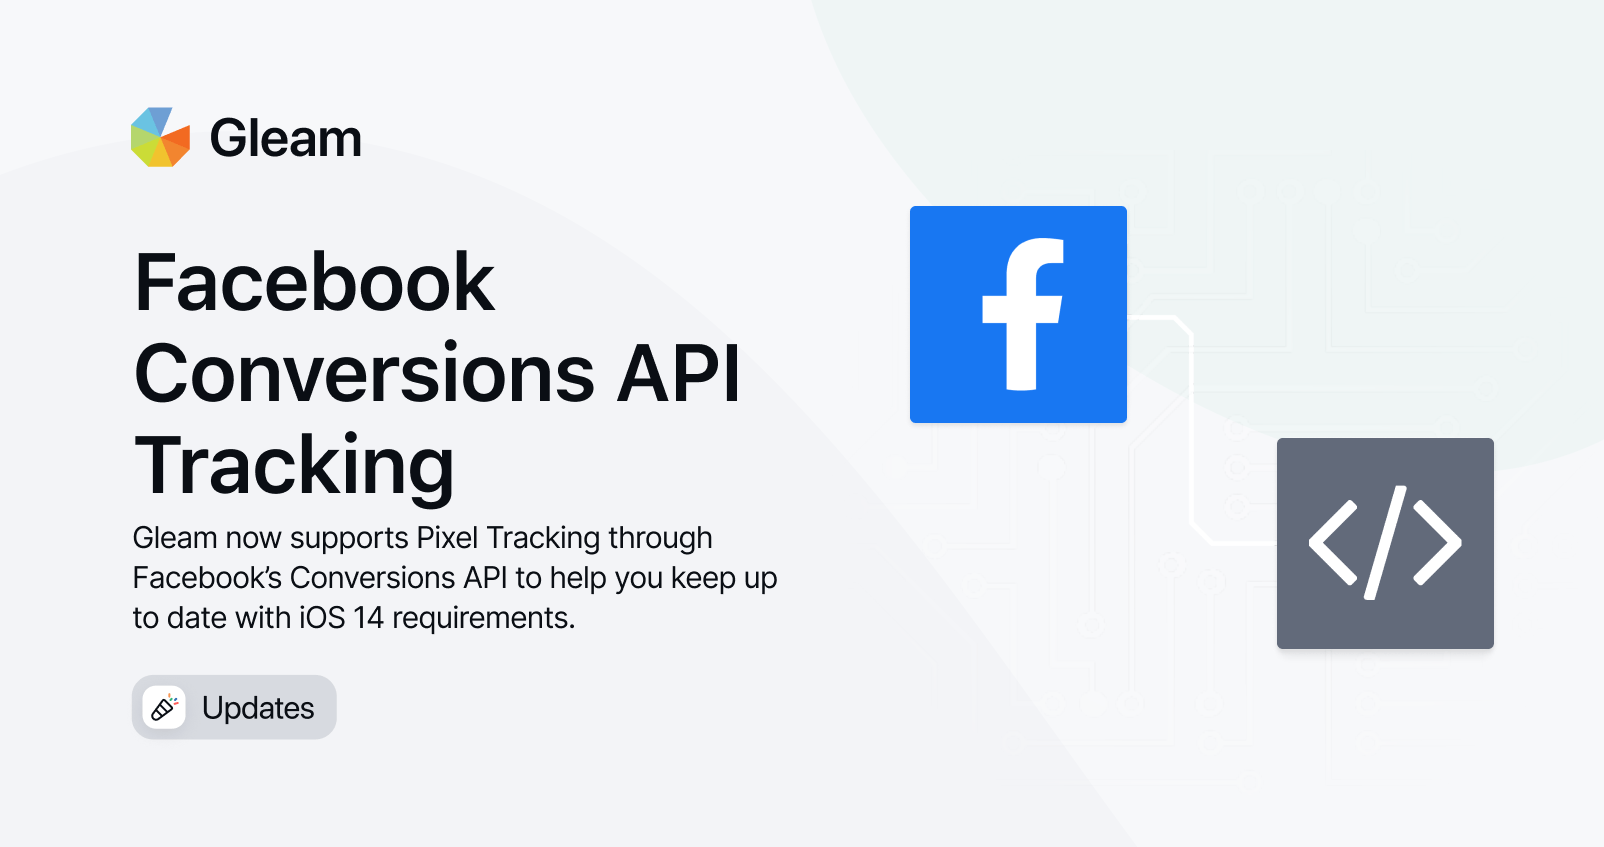 Support for Facebook Conversions API Tracking